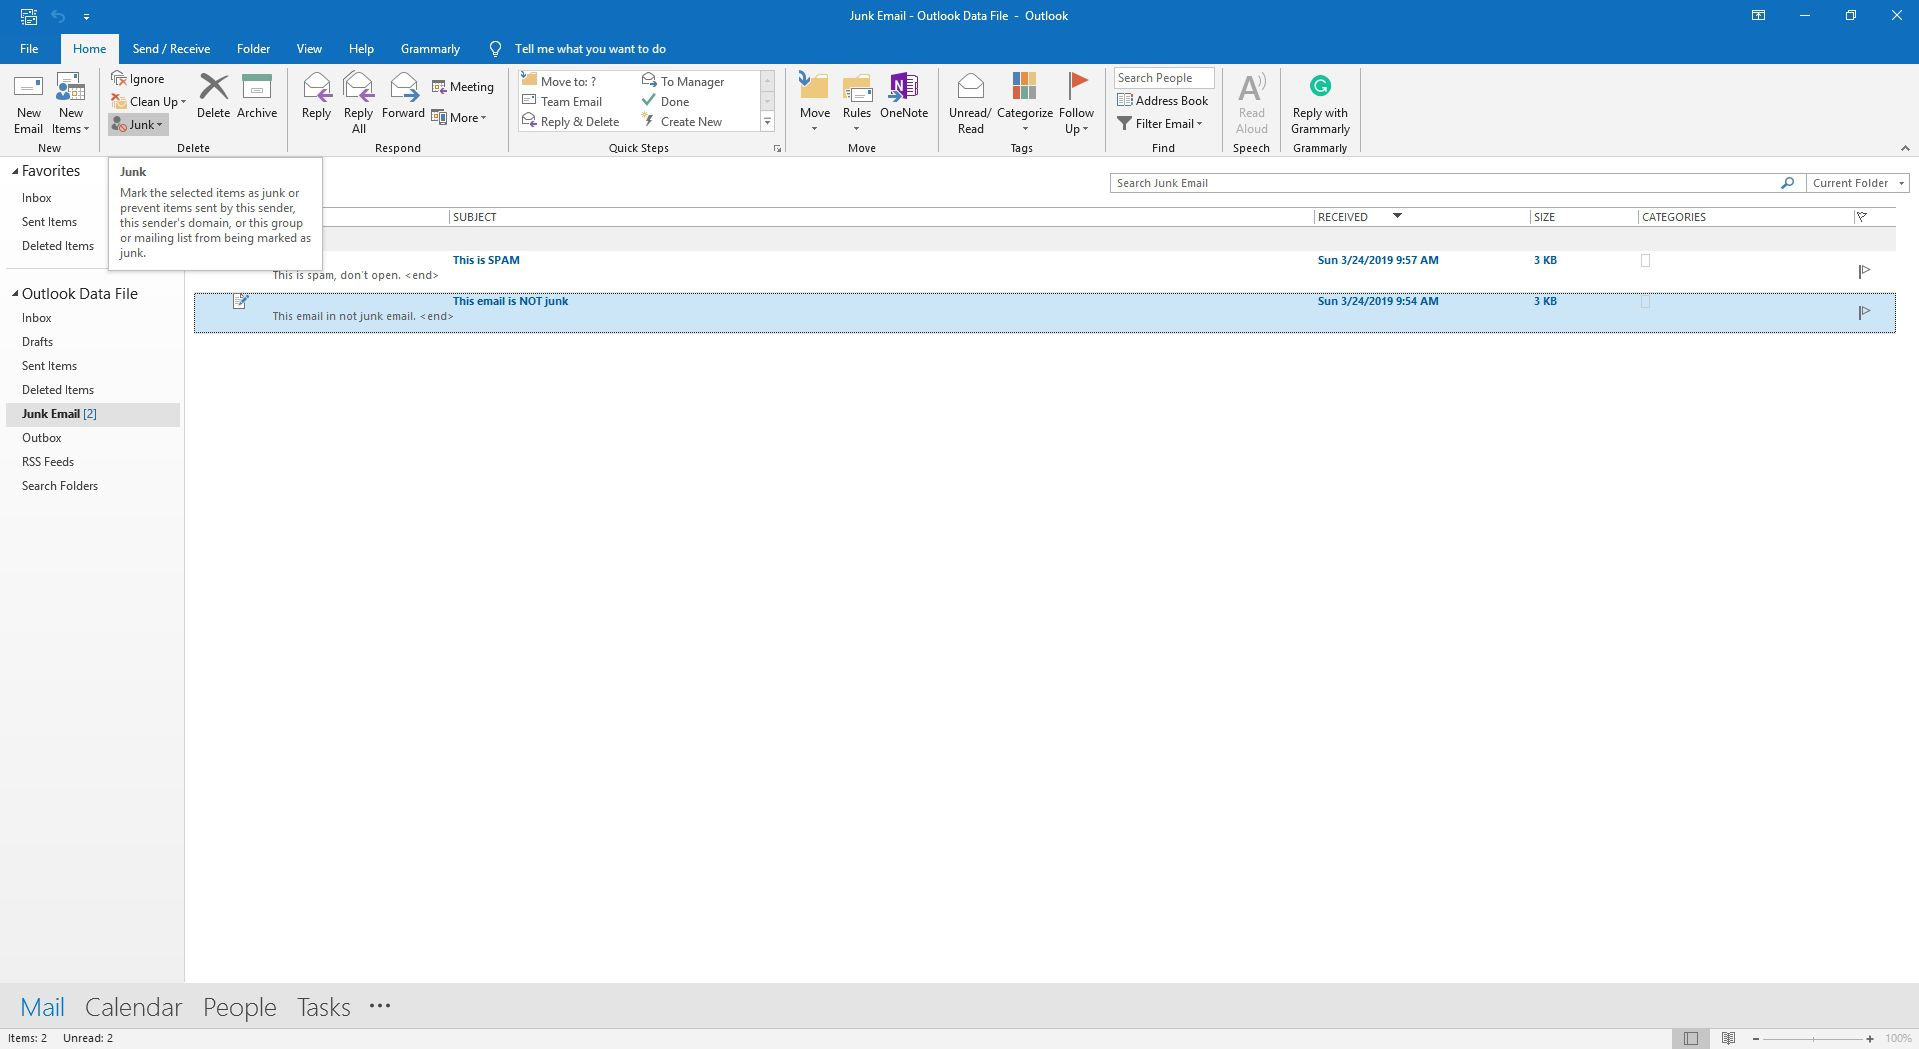 Highlighting the Junk email button in Outlook